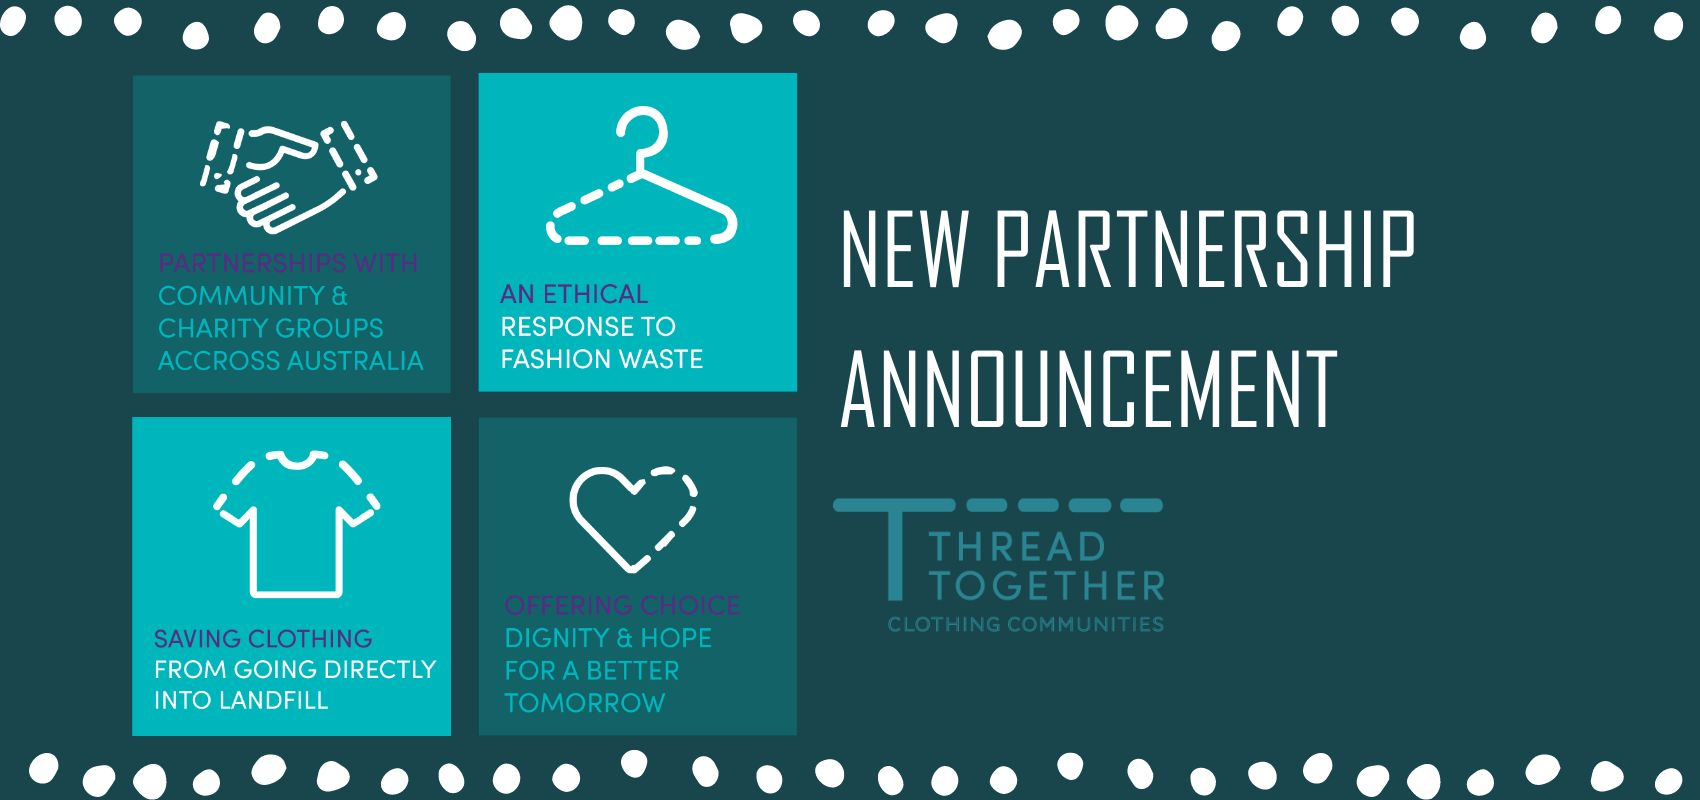 A new partnership between Norte and Thread Together